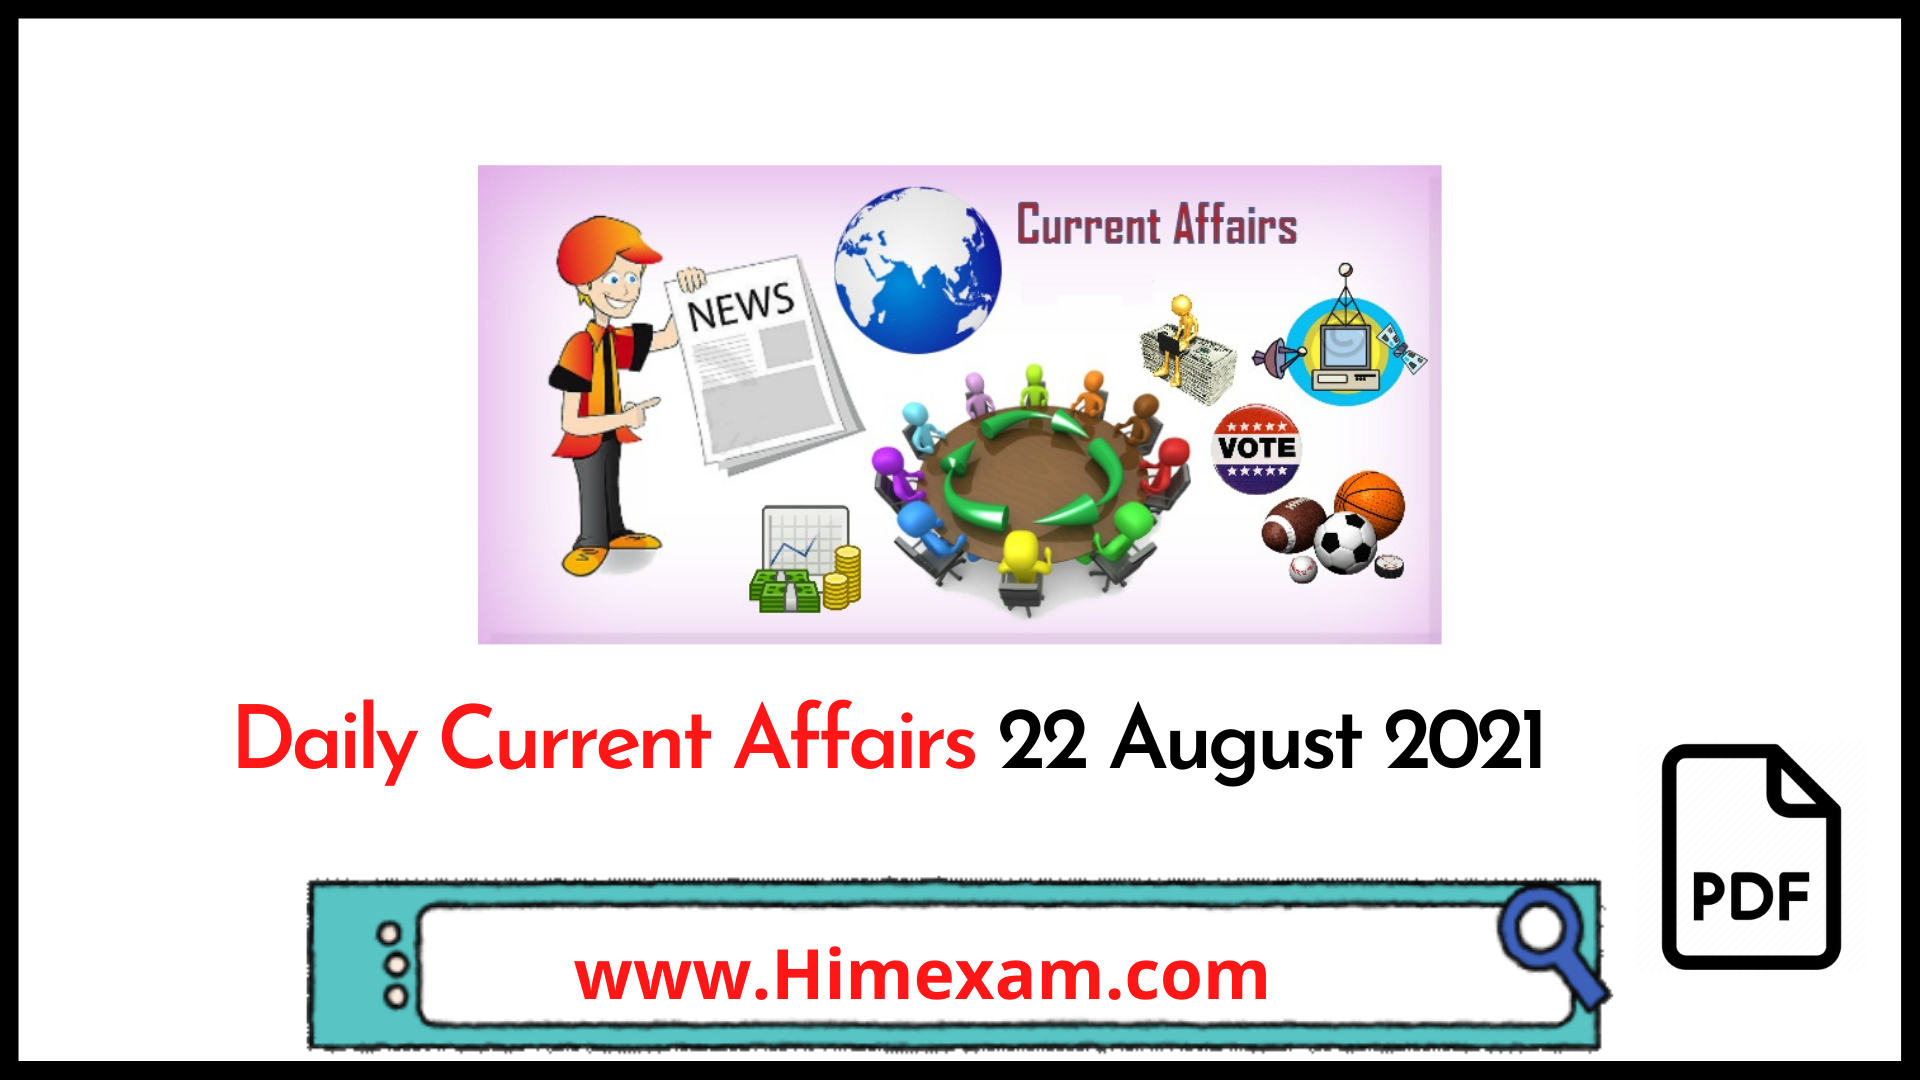 Daily Current Affairs 22 August 2021